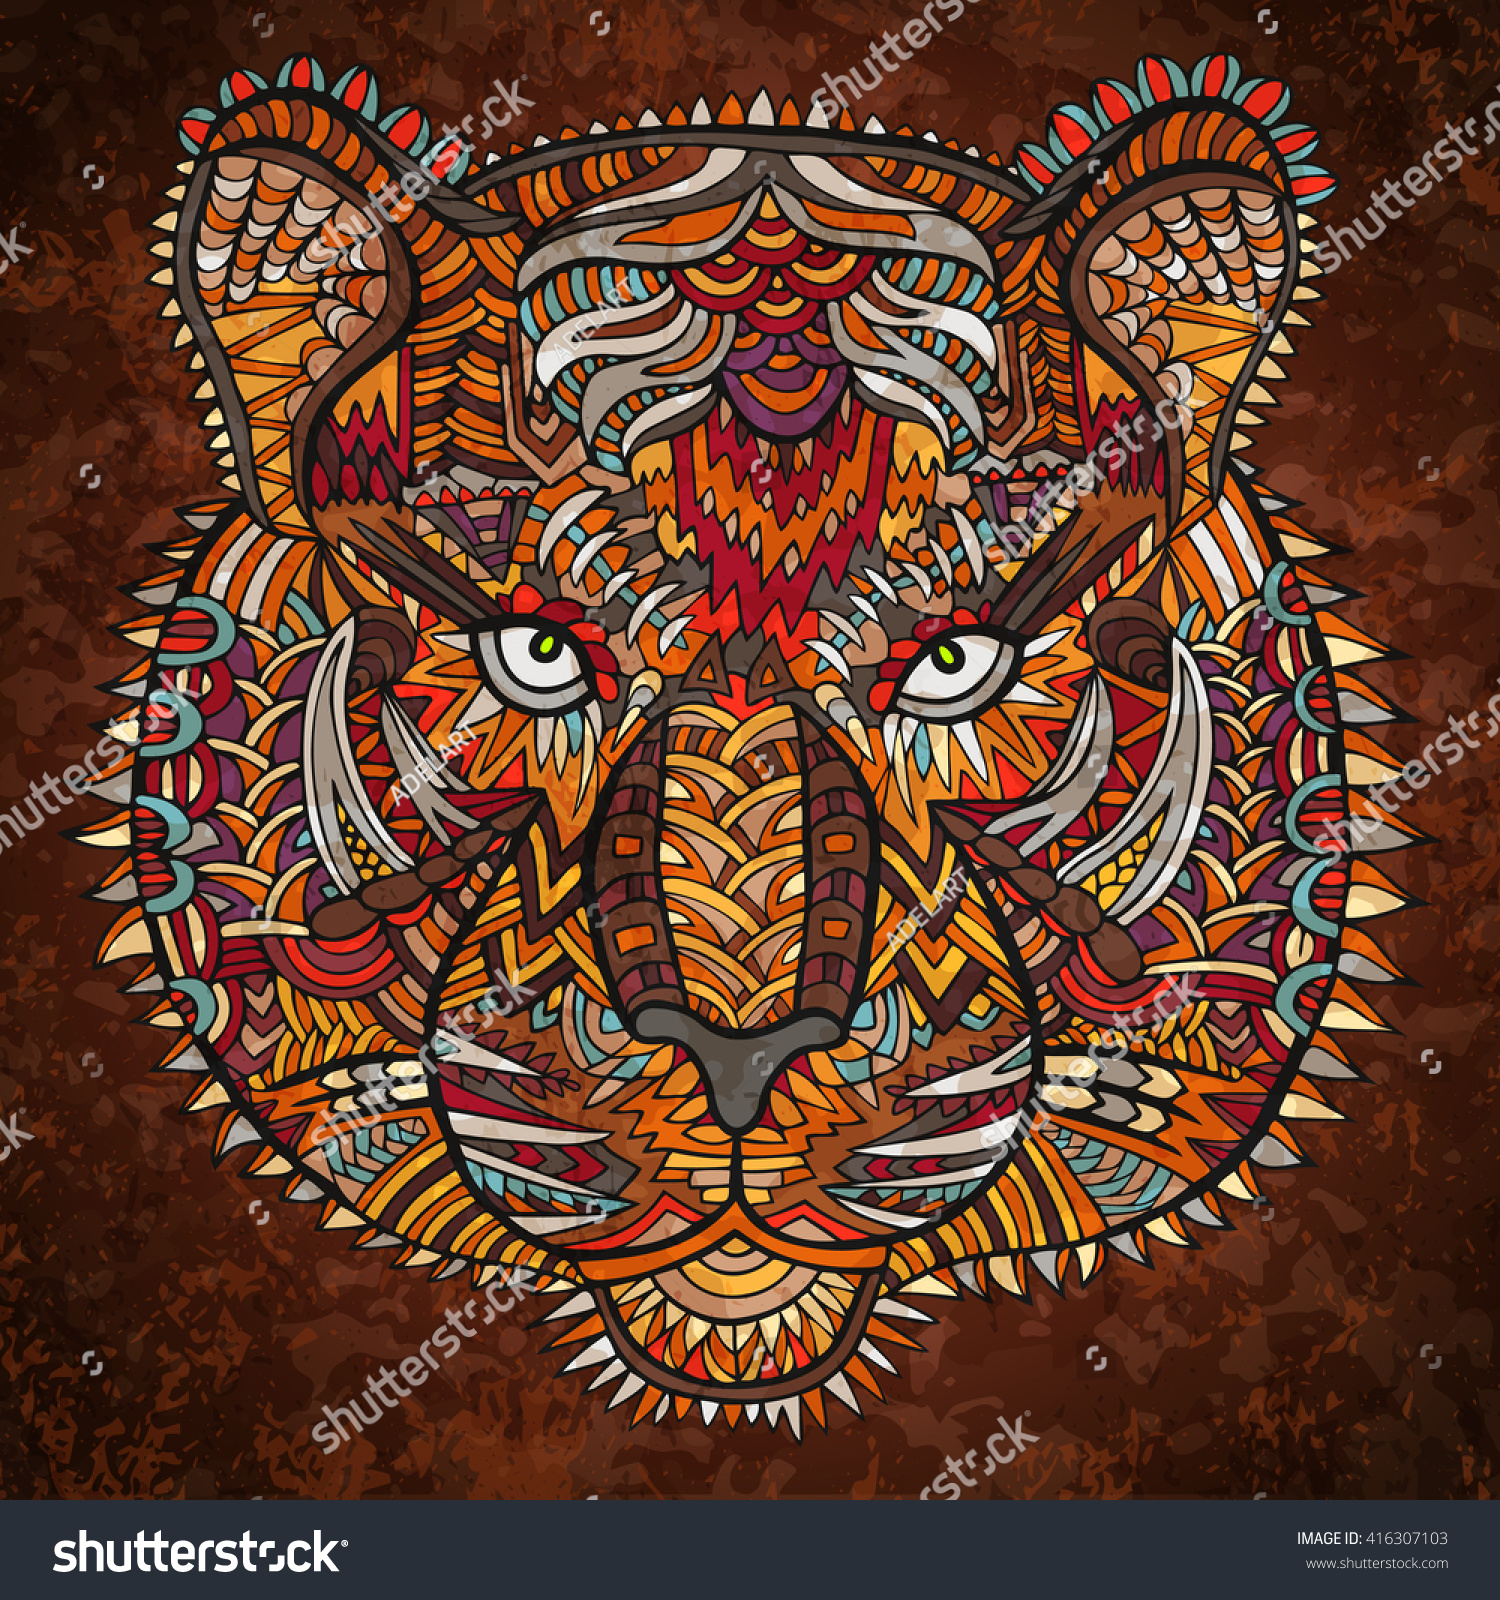 Tiger Head Zentangle Artwork Animal Illustration Zoo And Safari Theme